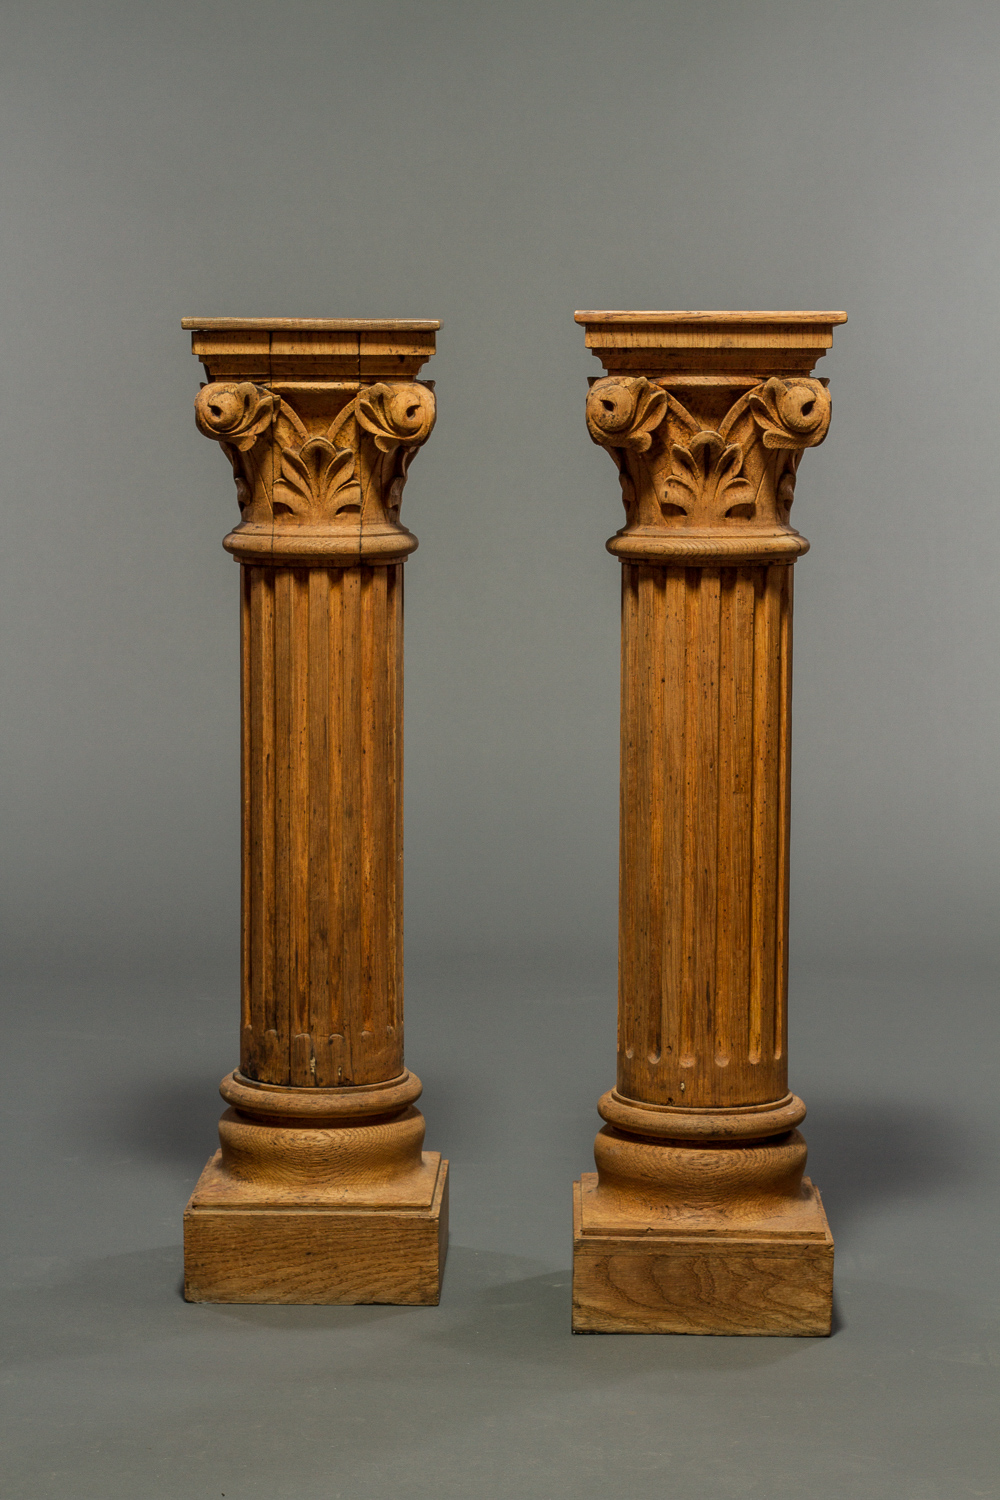 Pair of Neoclassical-Style Fluted Columns